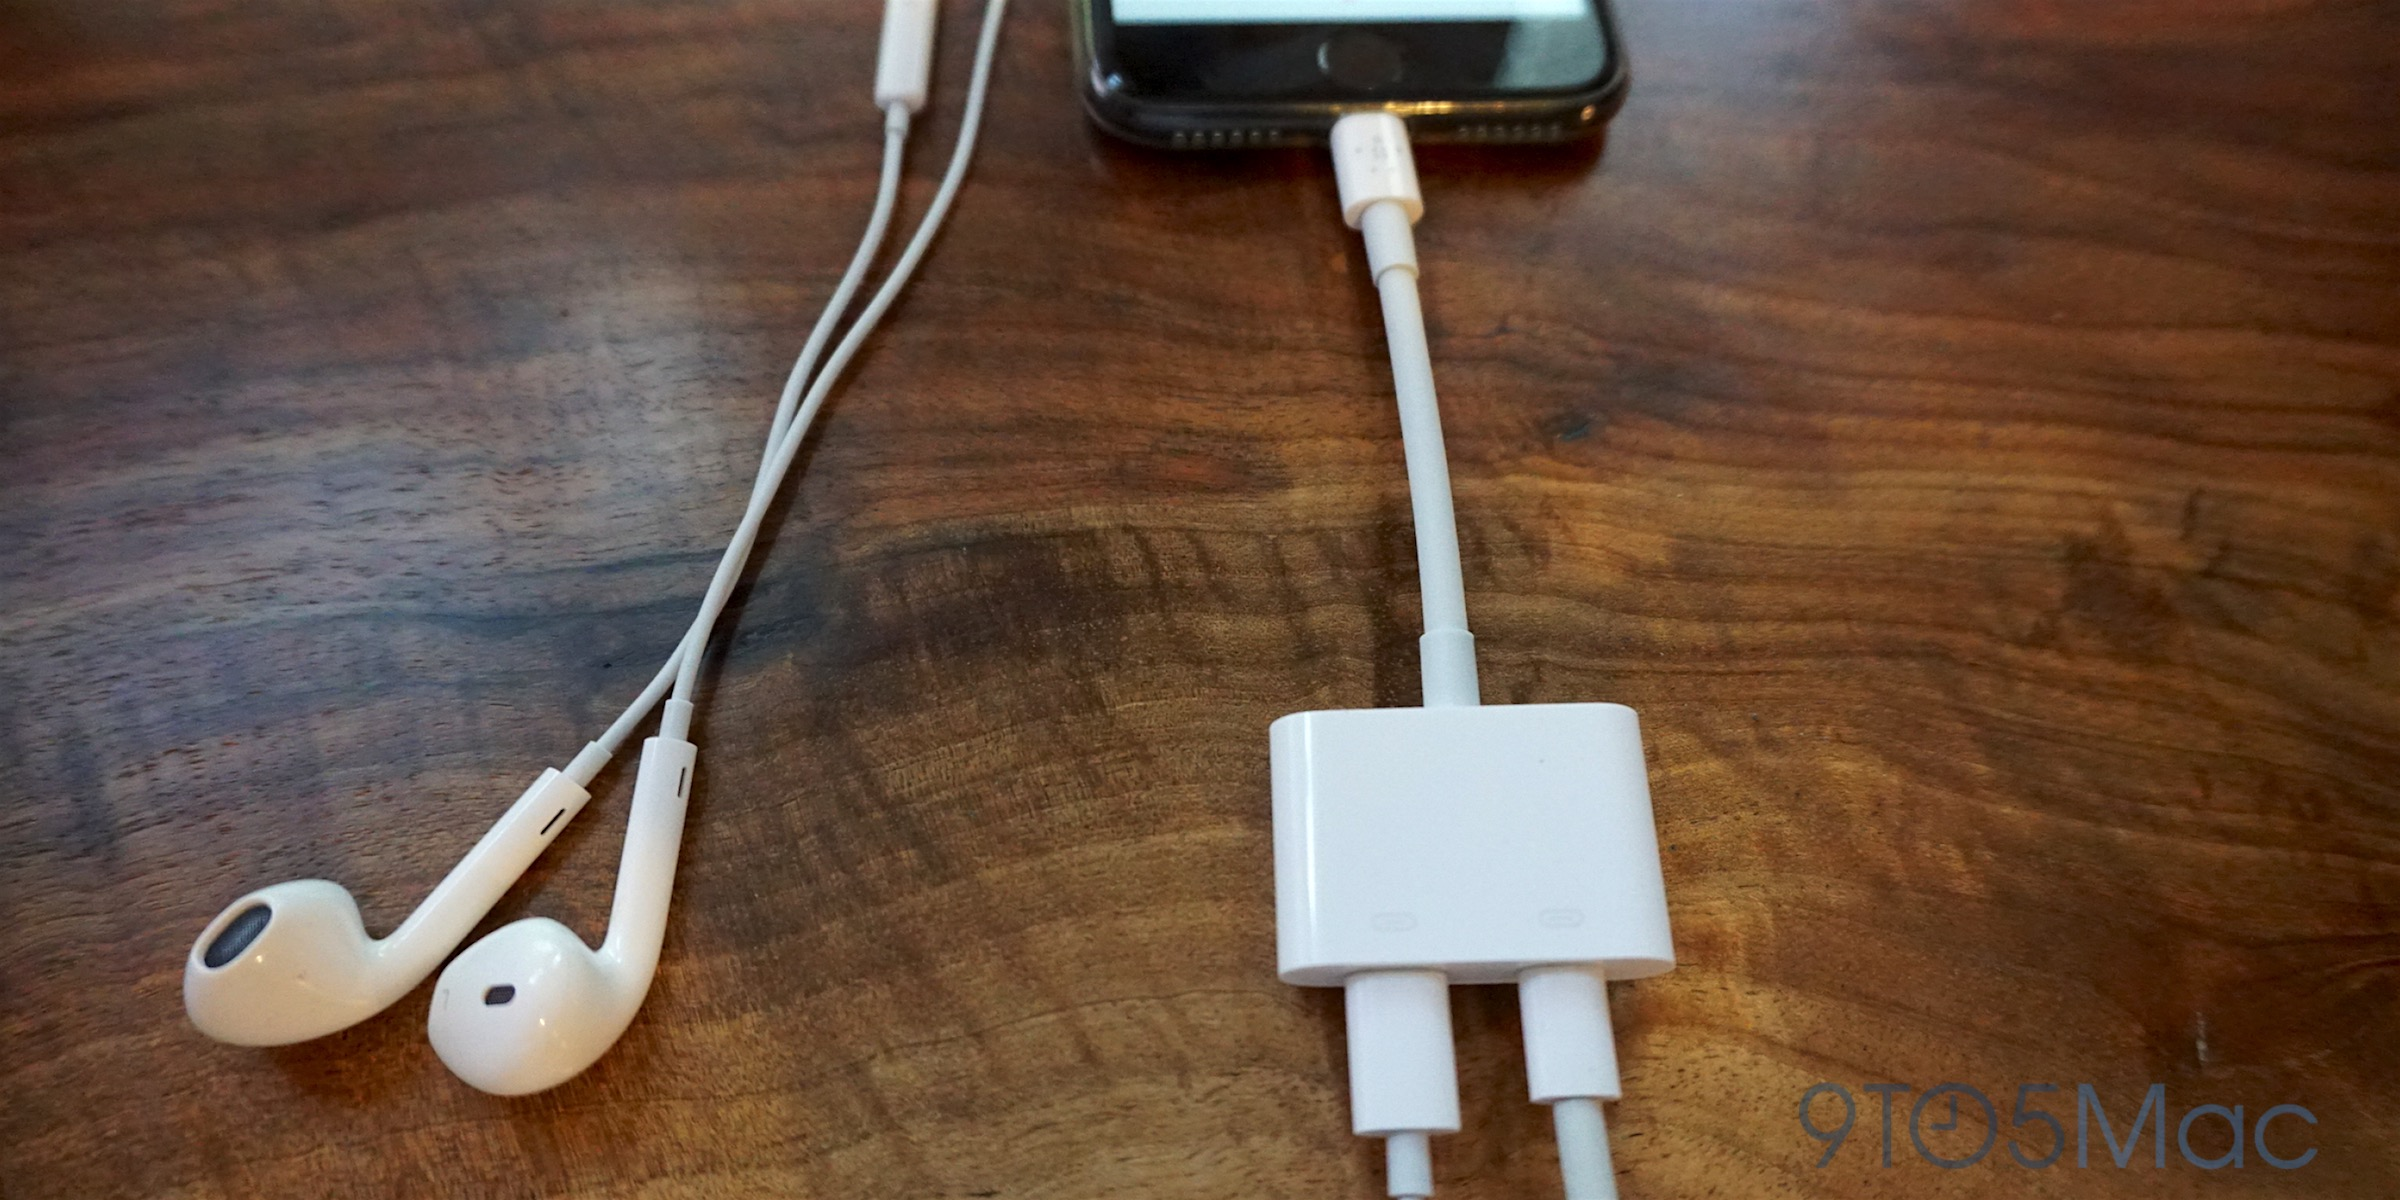 belkin-lightning-audio-charge-adapter-iphone-7-1